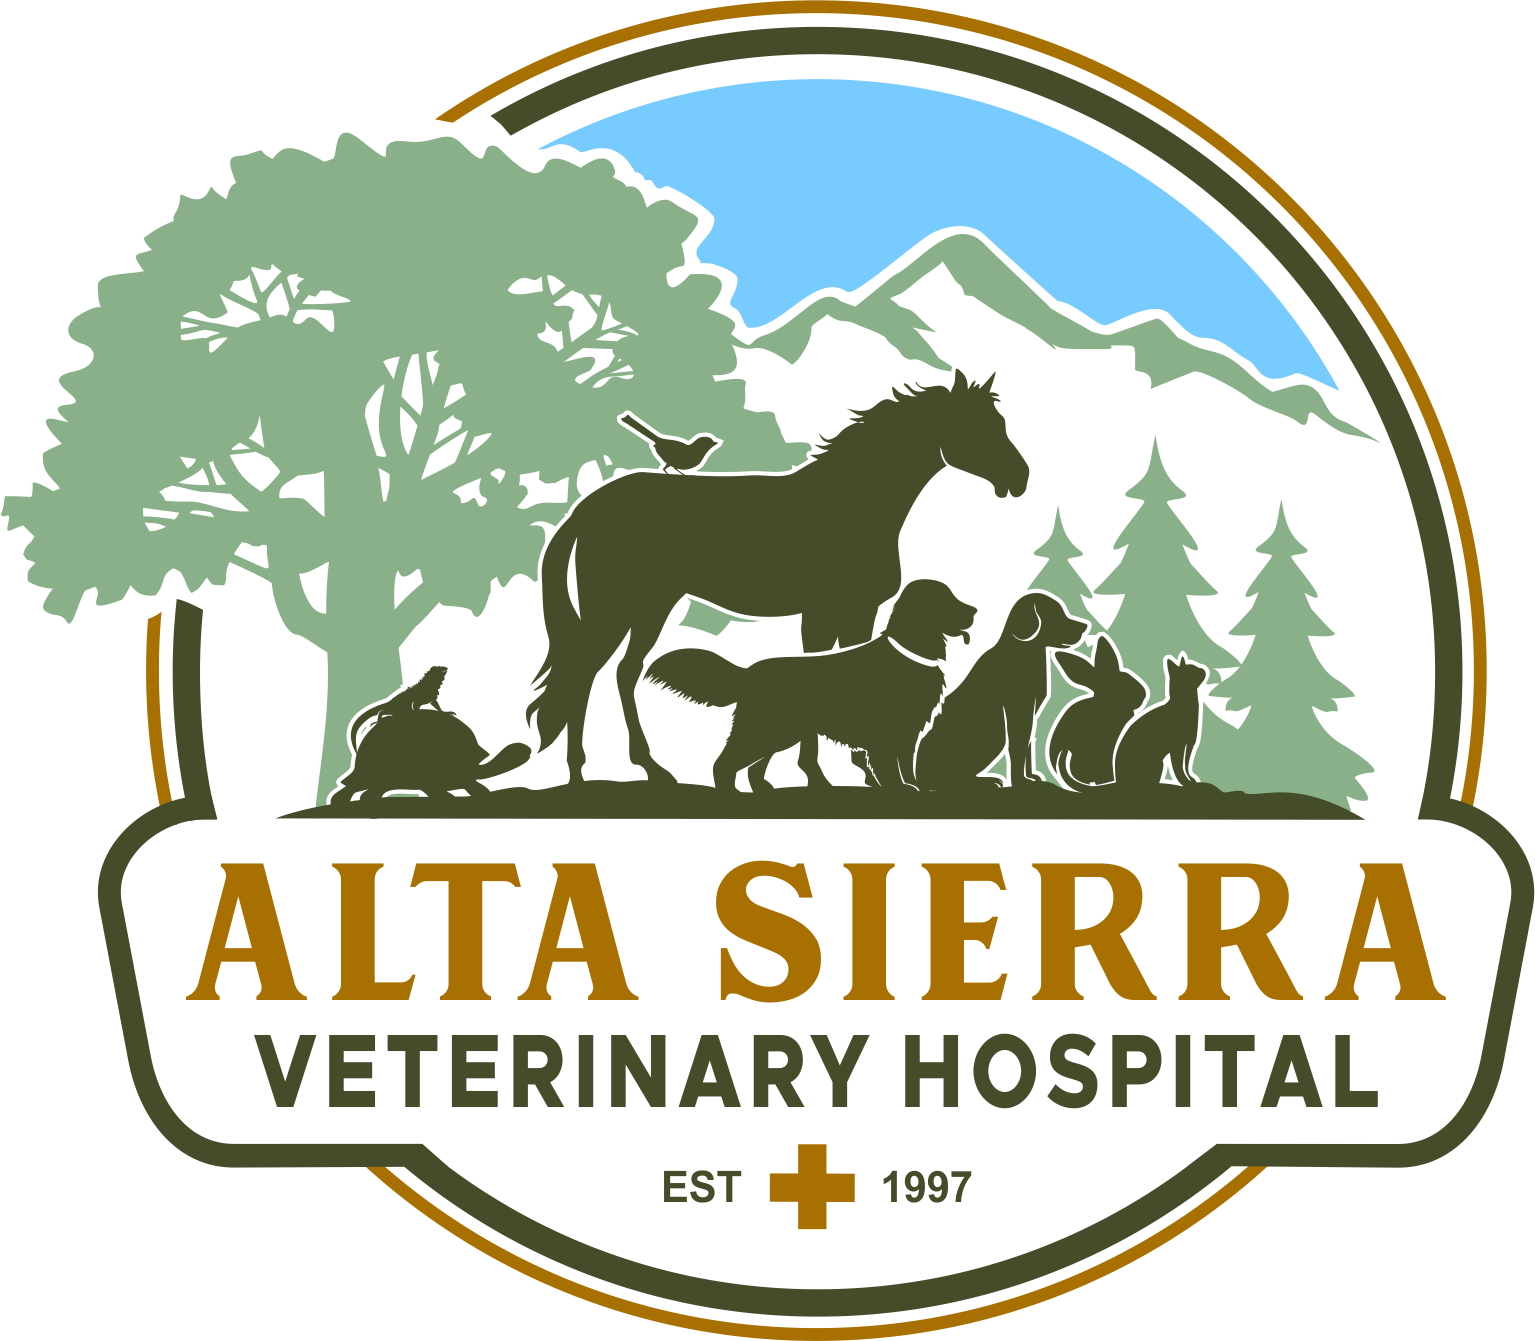 Alta Sierra Veterinary Hospital